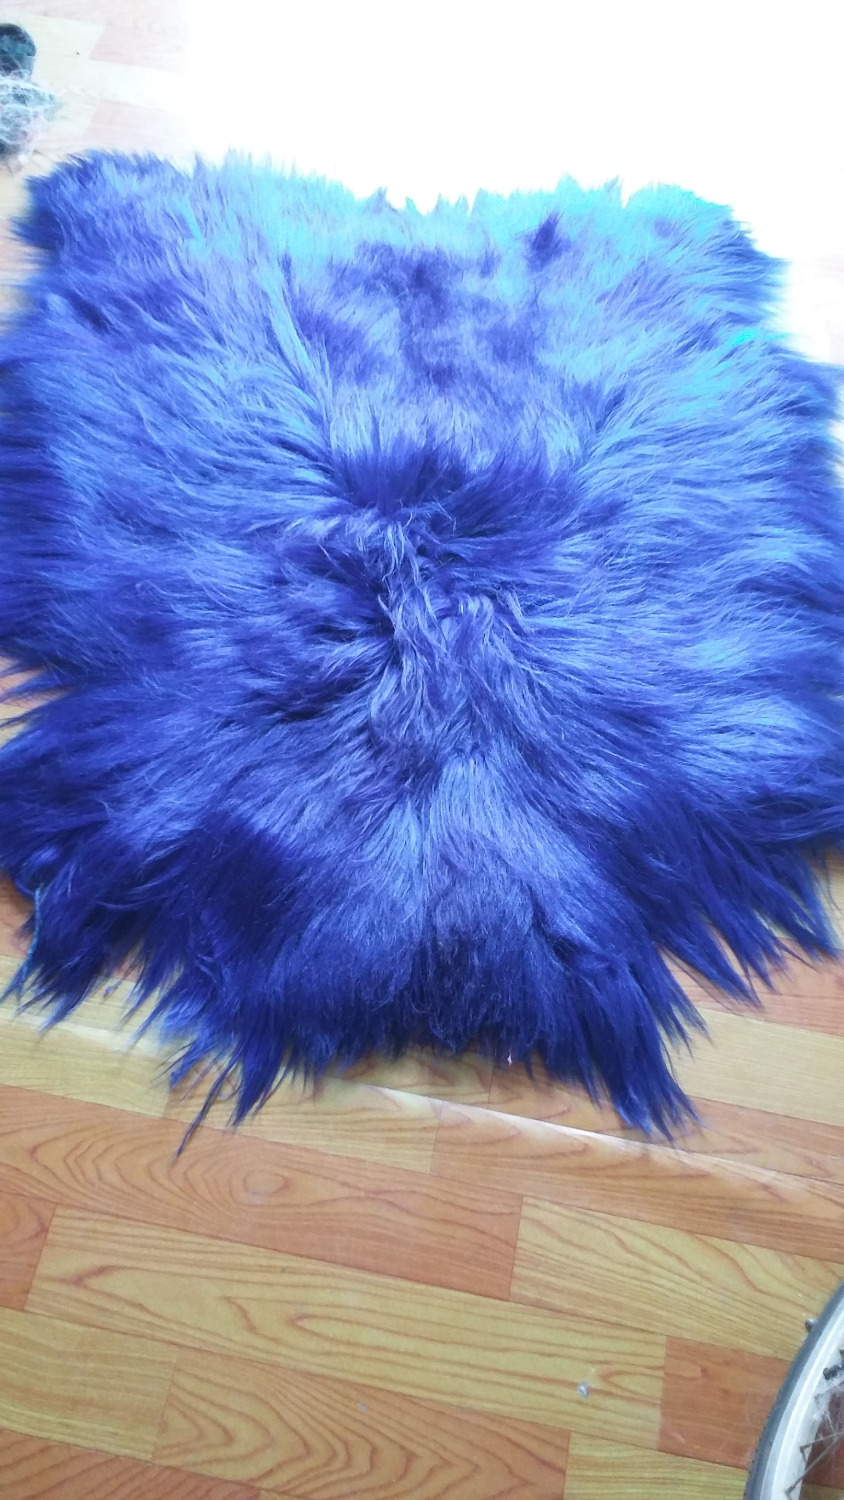 Tibetan Lamb Rug Mongolian Lamb Skins / Black Goat Fur - Arts, Crafts and Sewing - Photo 3